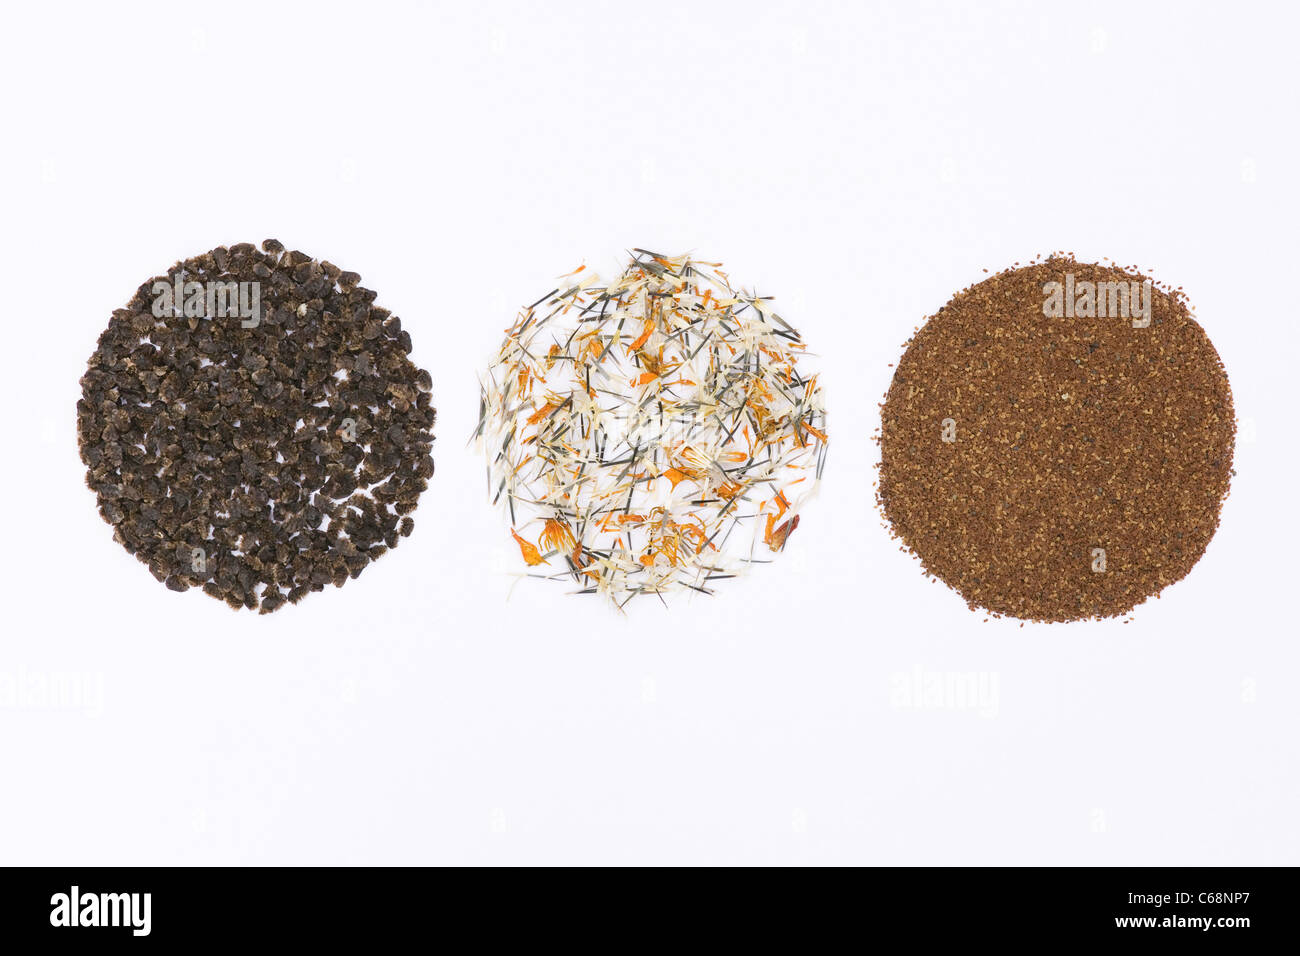 Aconitum, Tagetes and Digitalis seeds on a white background - Stock Image